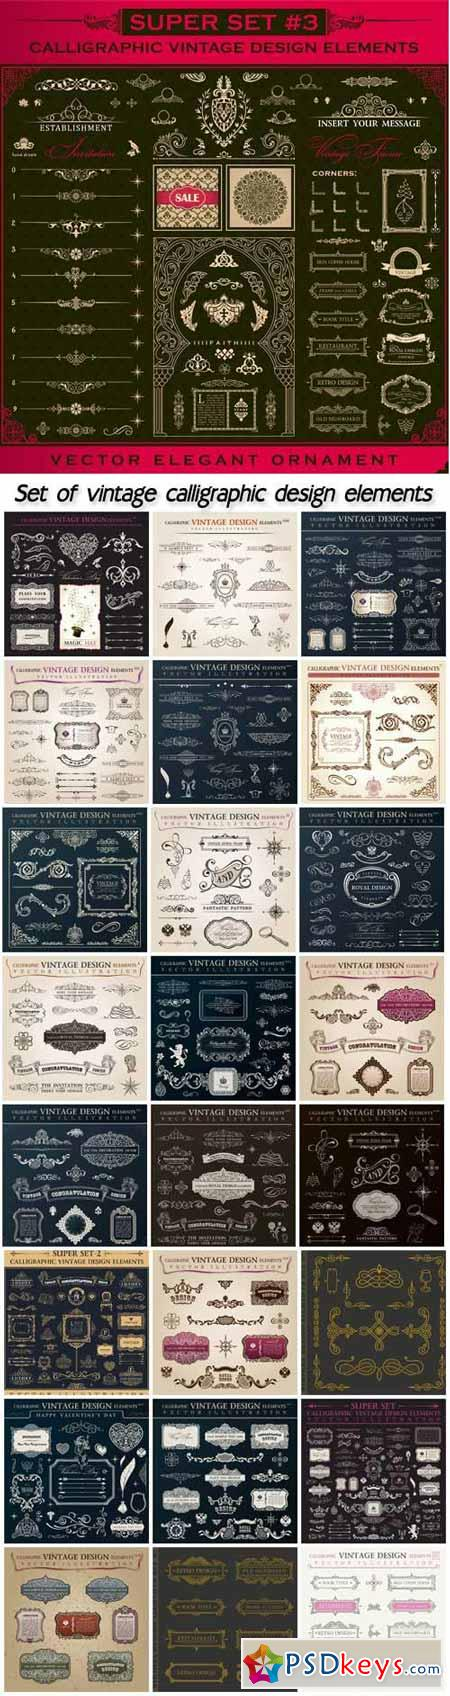 Set of vintage calligraphic design elements in vector